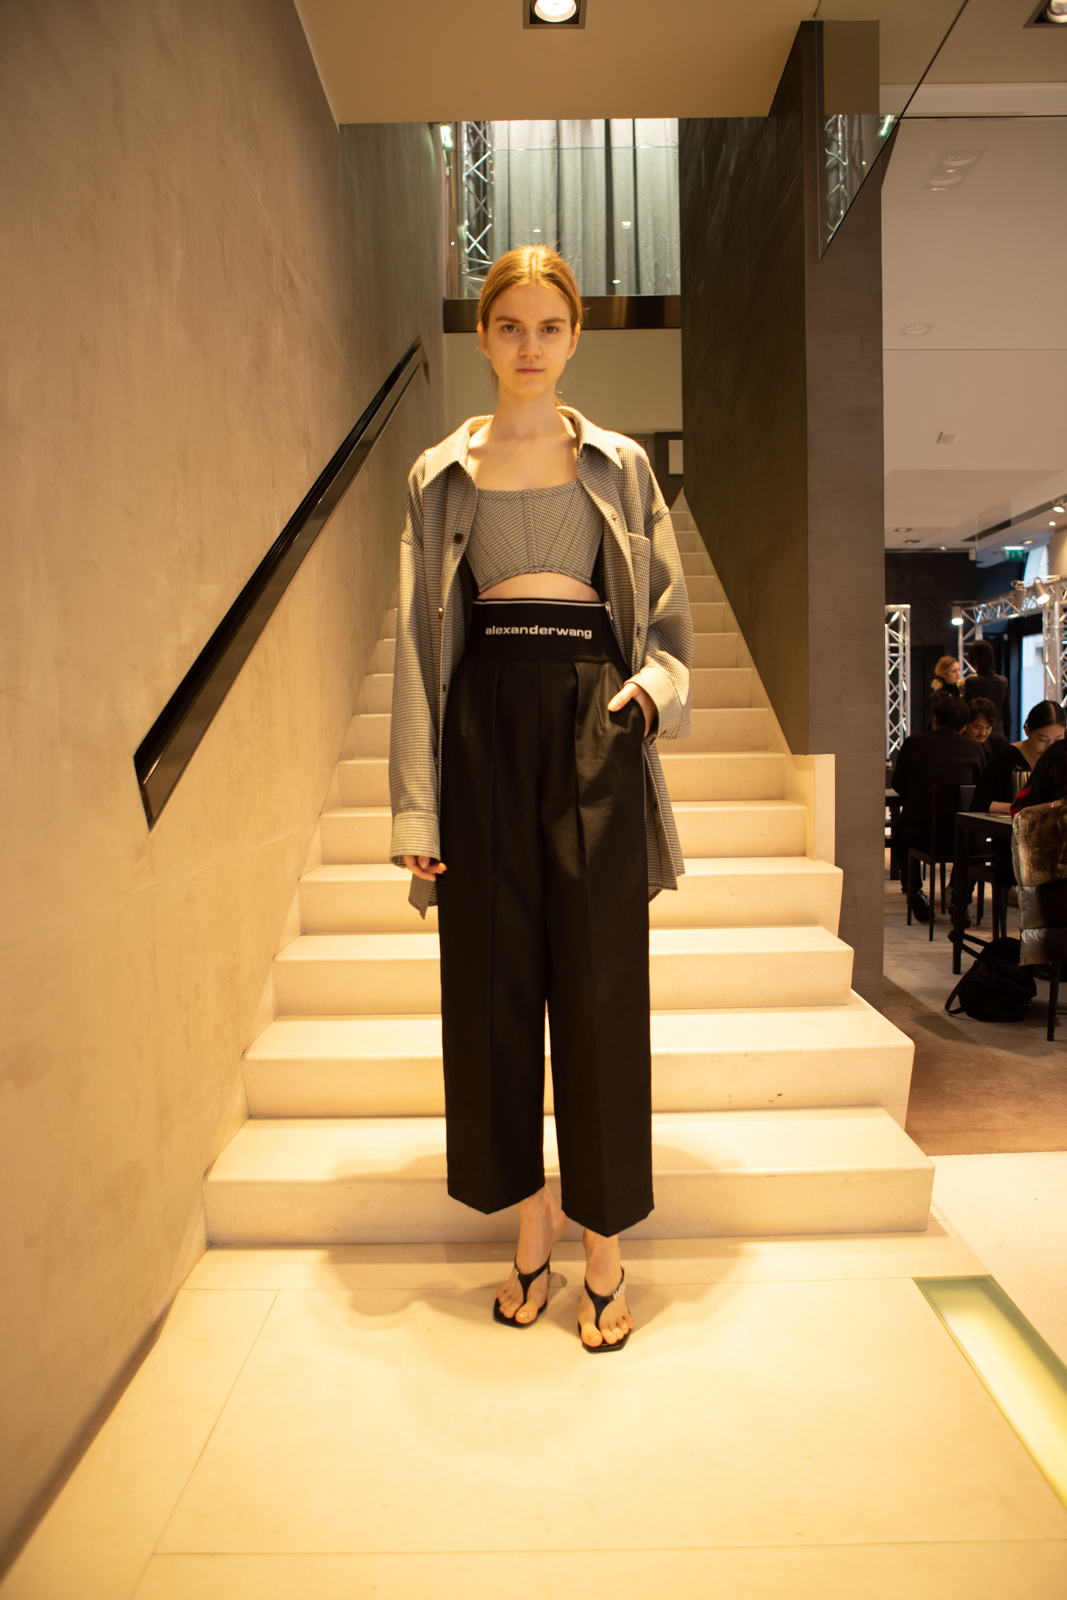 Alexander Wang Oversized Shirt Jacket in Grey Crop Top in Black Logo Elastic Carrot Pant in Black FW 20